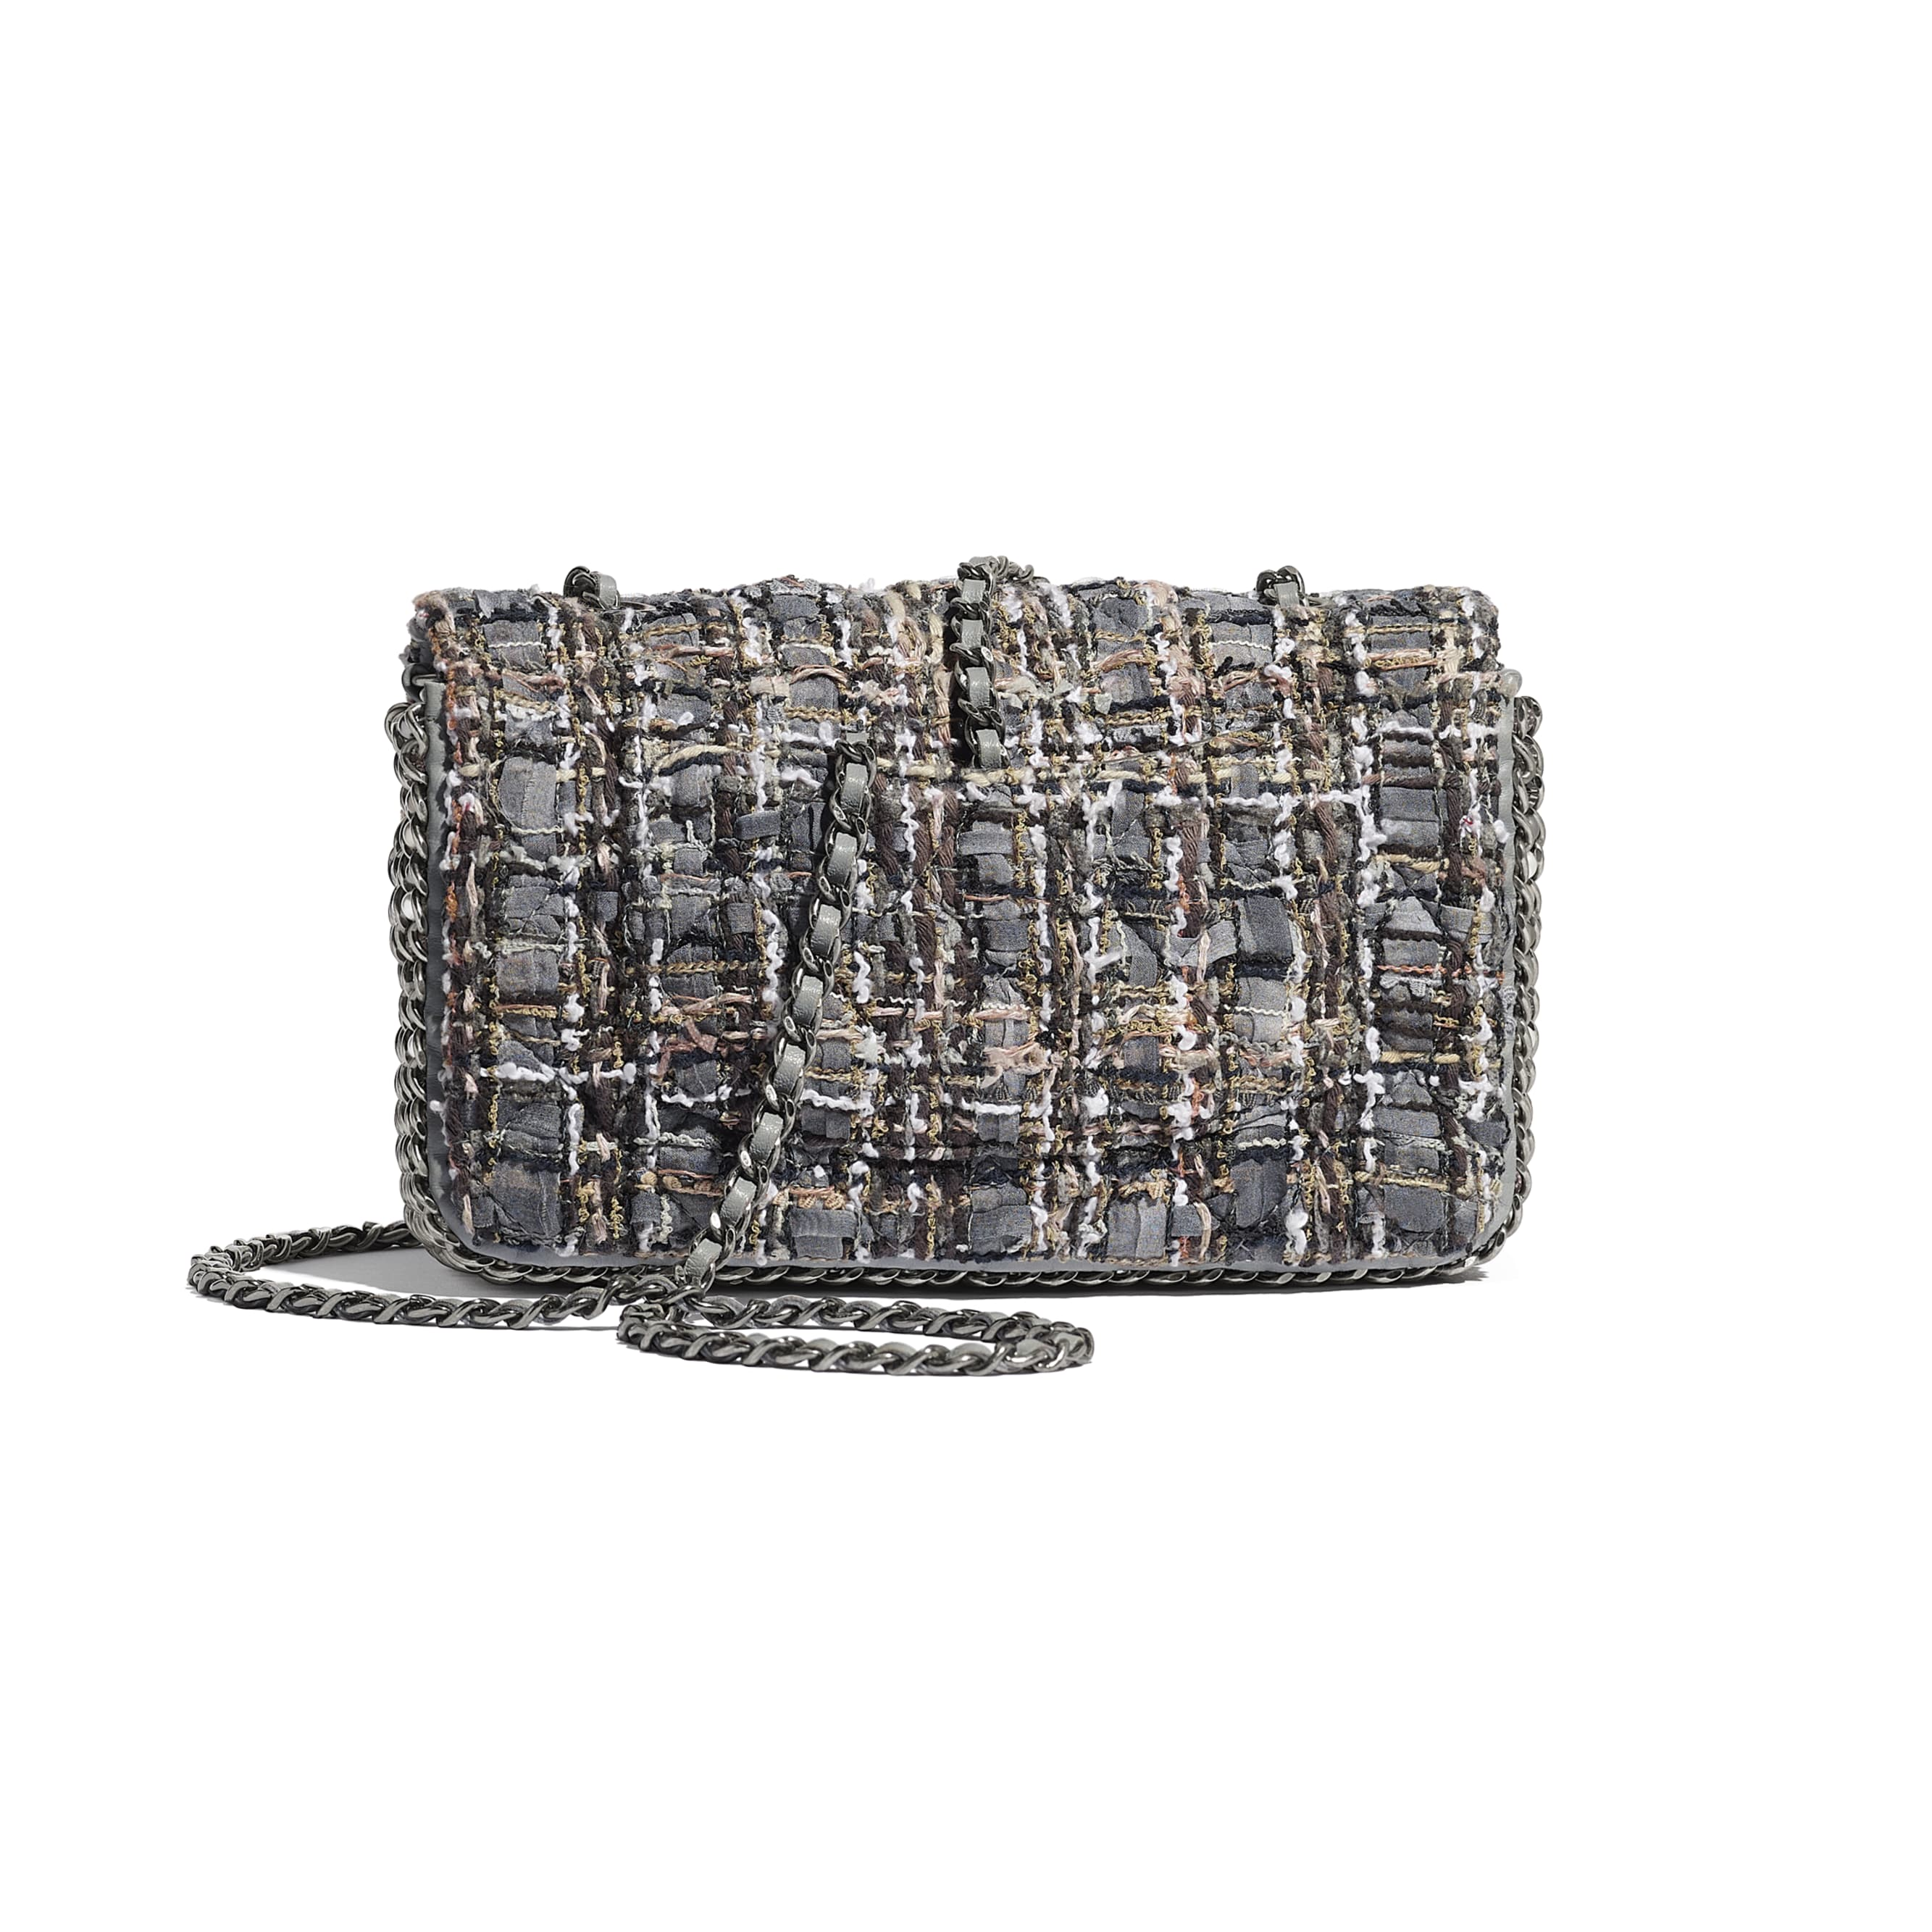 Flap Bag - Grey, Beige, Brown & White - Tweed, Imitation Pearls & Ruthenium-Finish Metal - CHANEL - Alternative view - see standard sized version